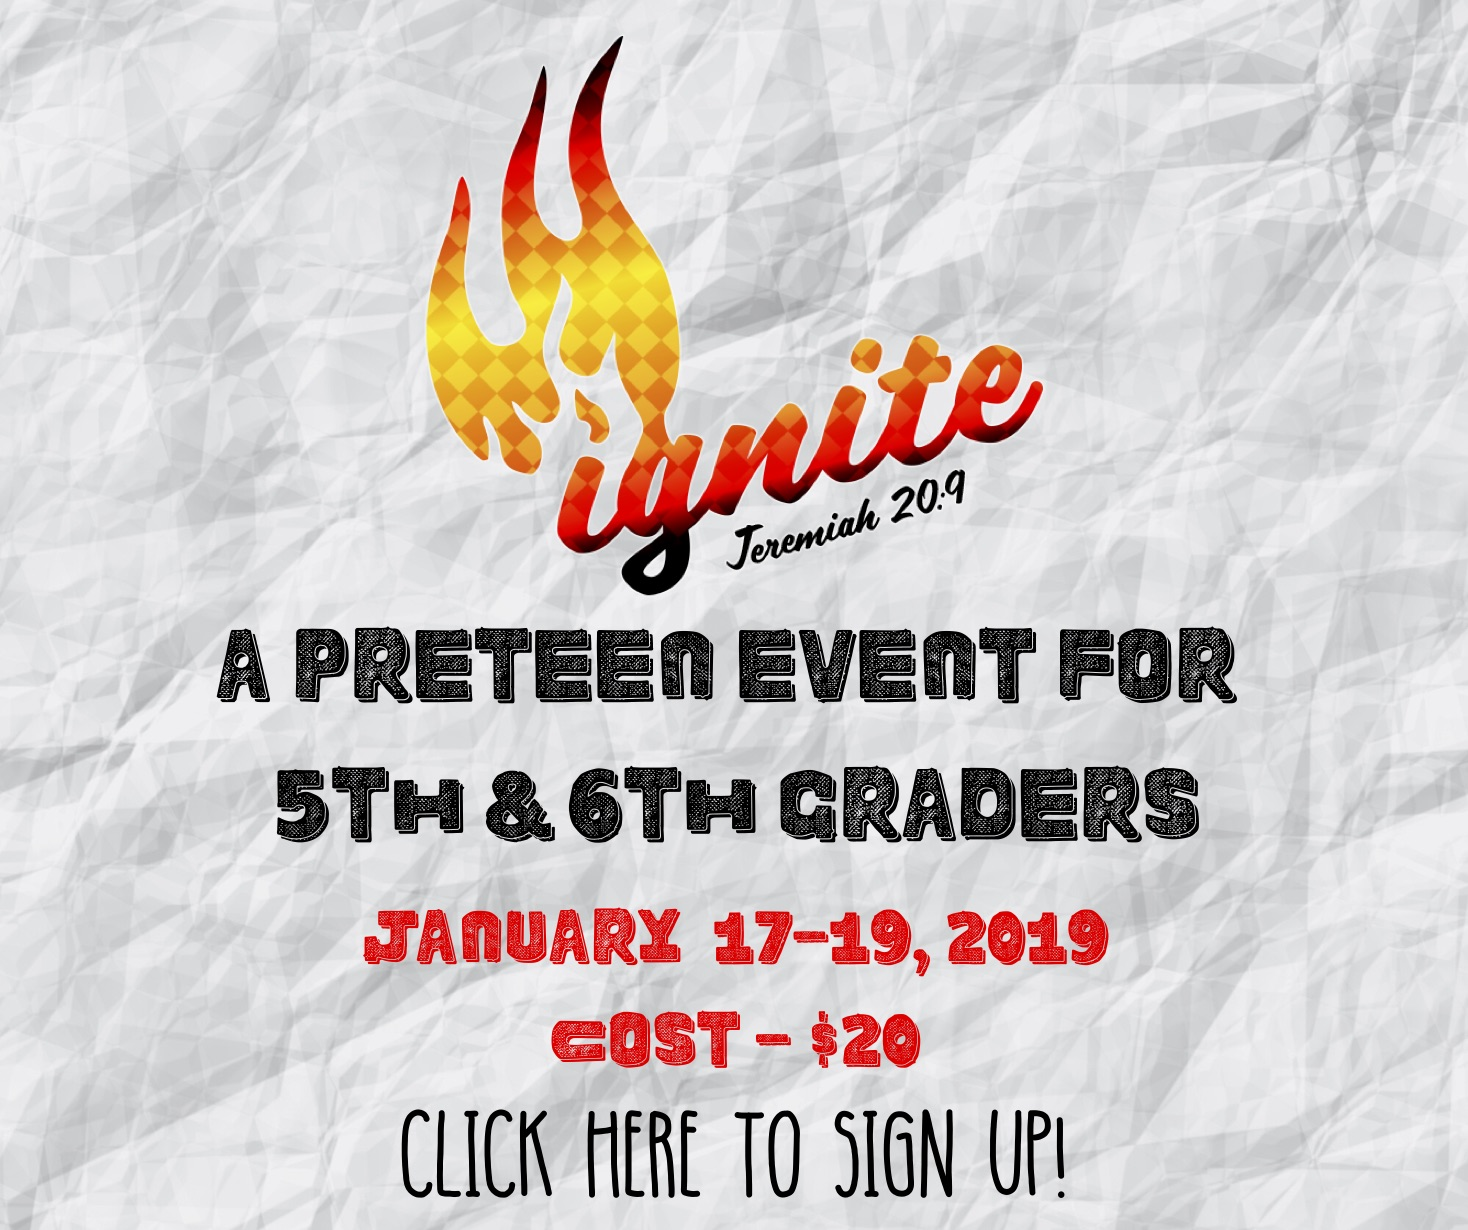 A PRETEEN EVENT FOR 5TH AND 6TH GRADERS (1)